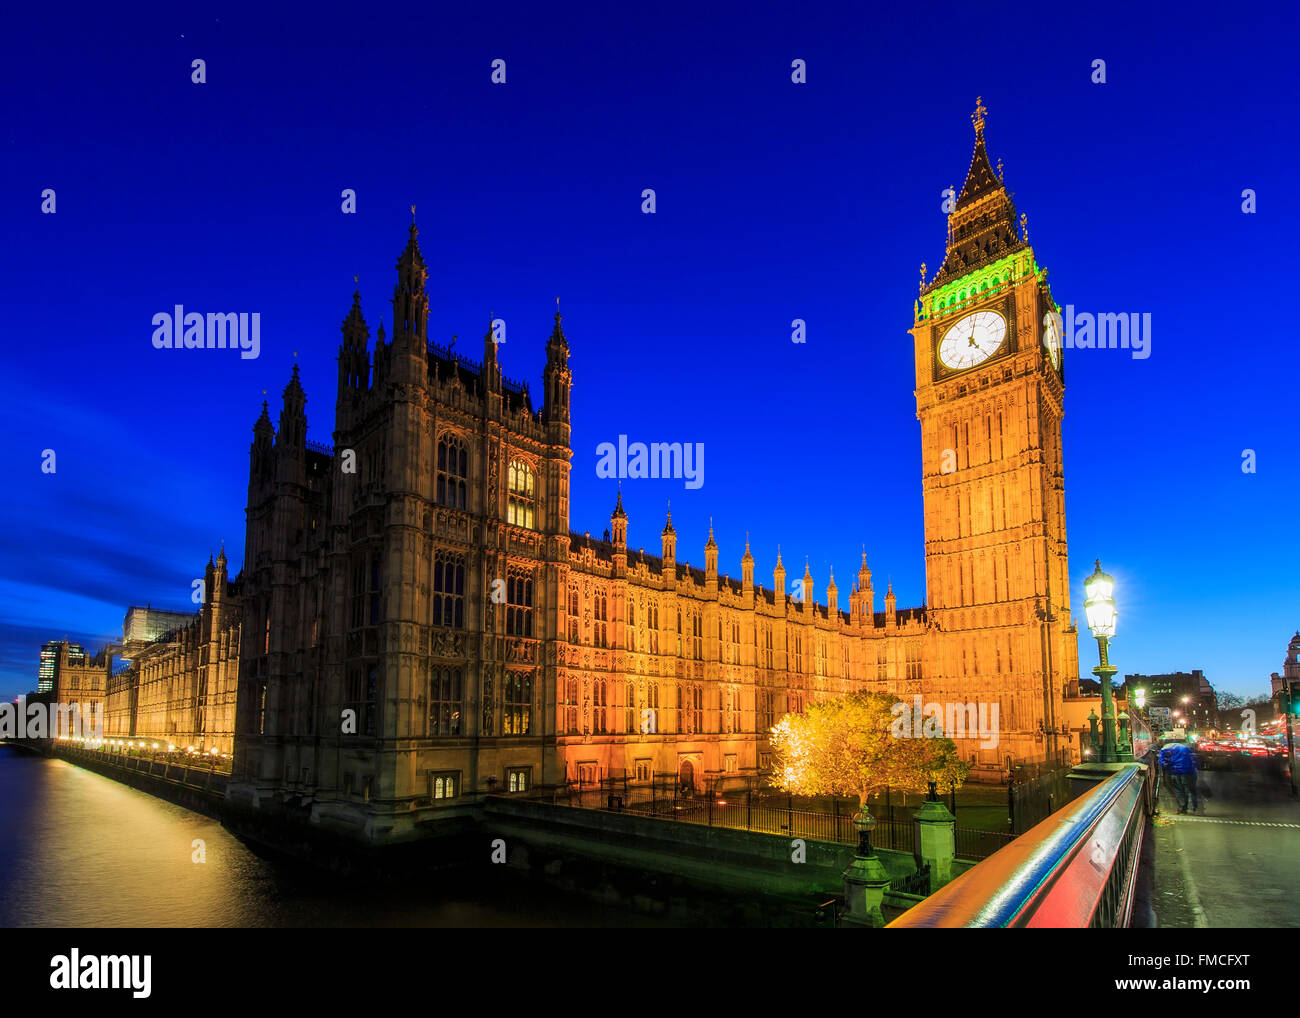 Traveling in the famous Big Ben, London, United Kingdom around twilight - Stock Image